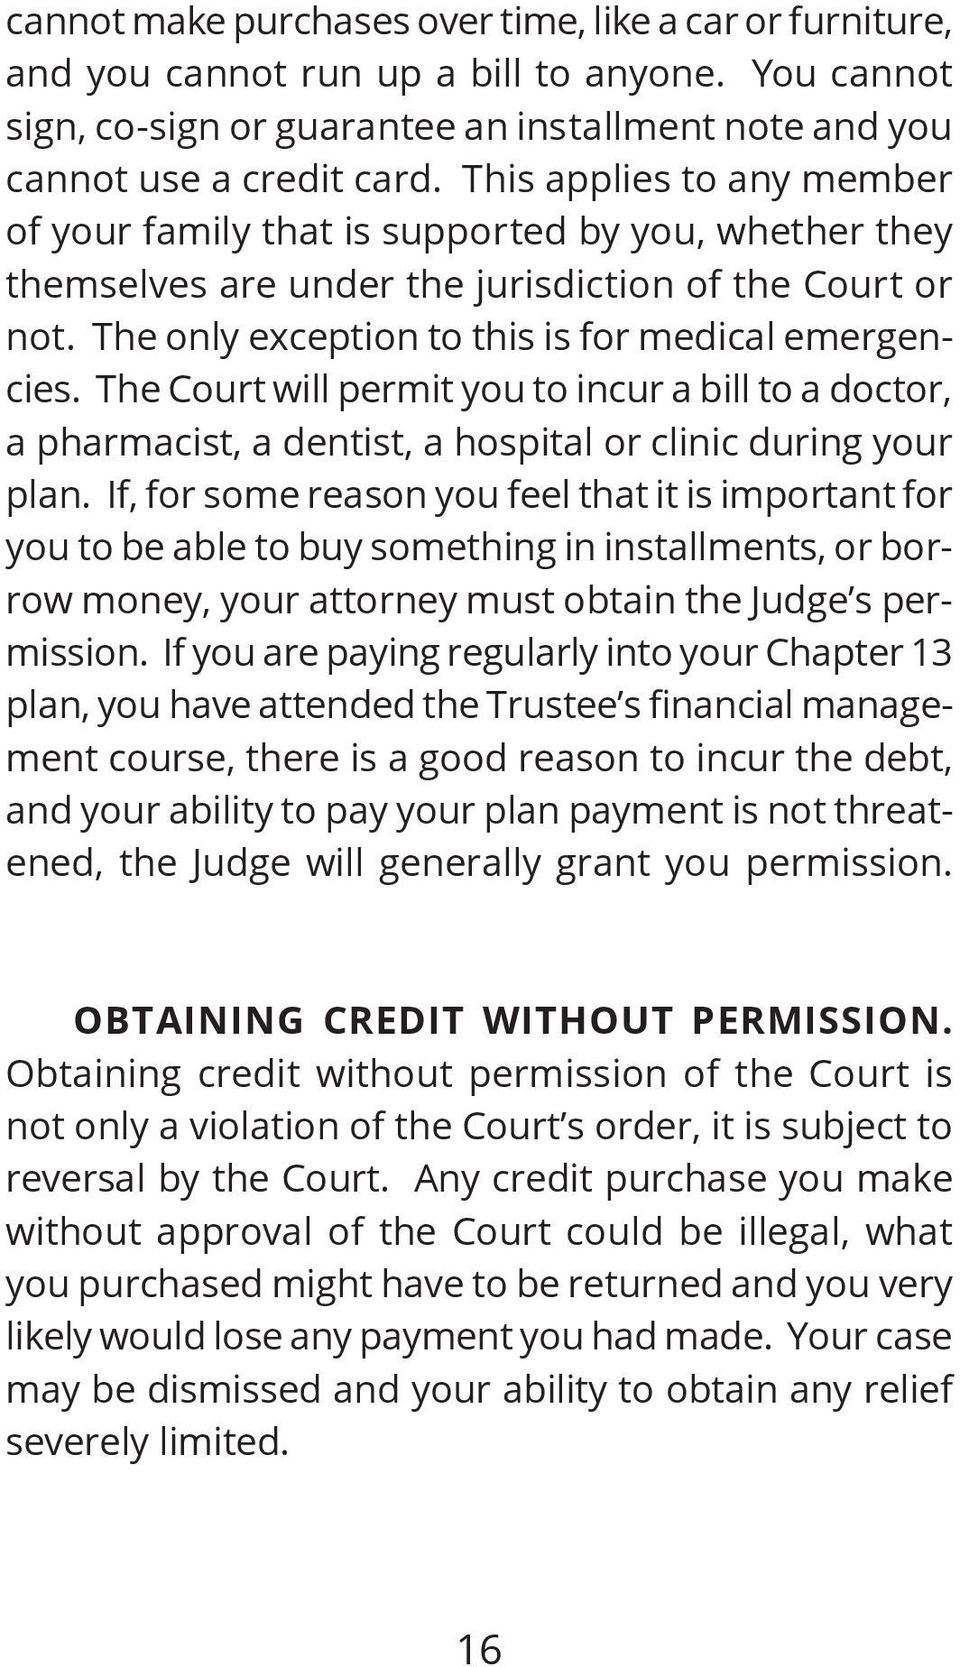 The Court will permit you to incur a bill to a doctor, a pharmacist, a dentist, a hospital or clinic during your plan.